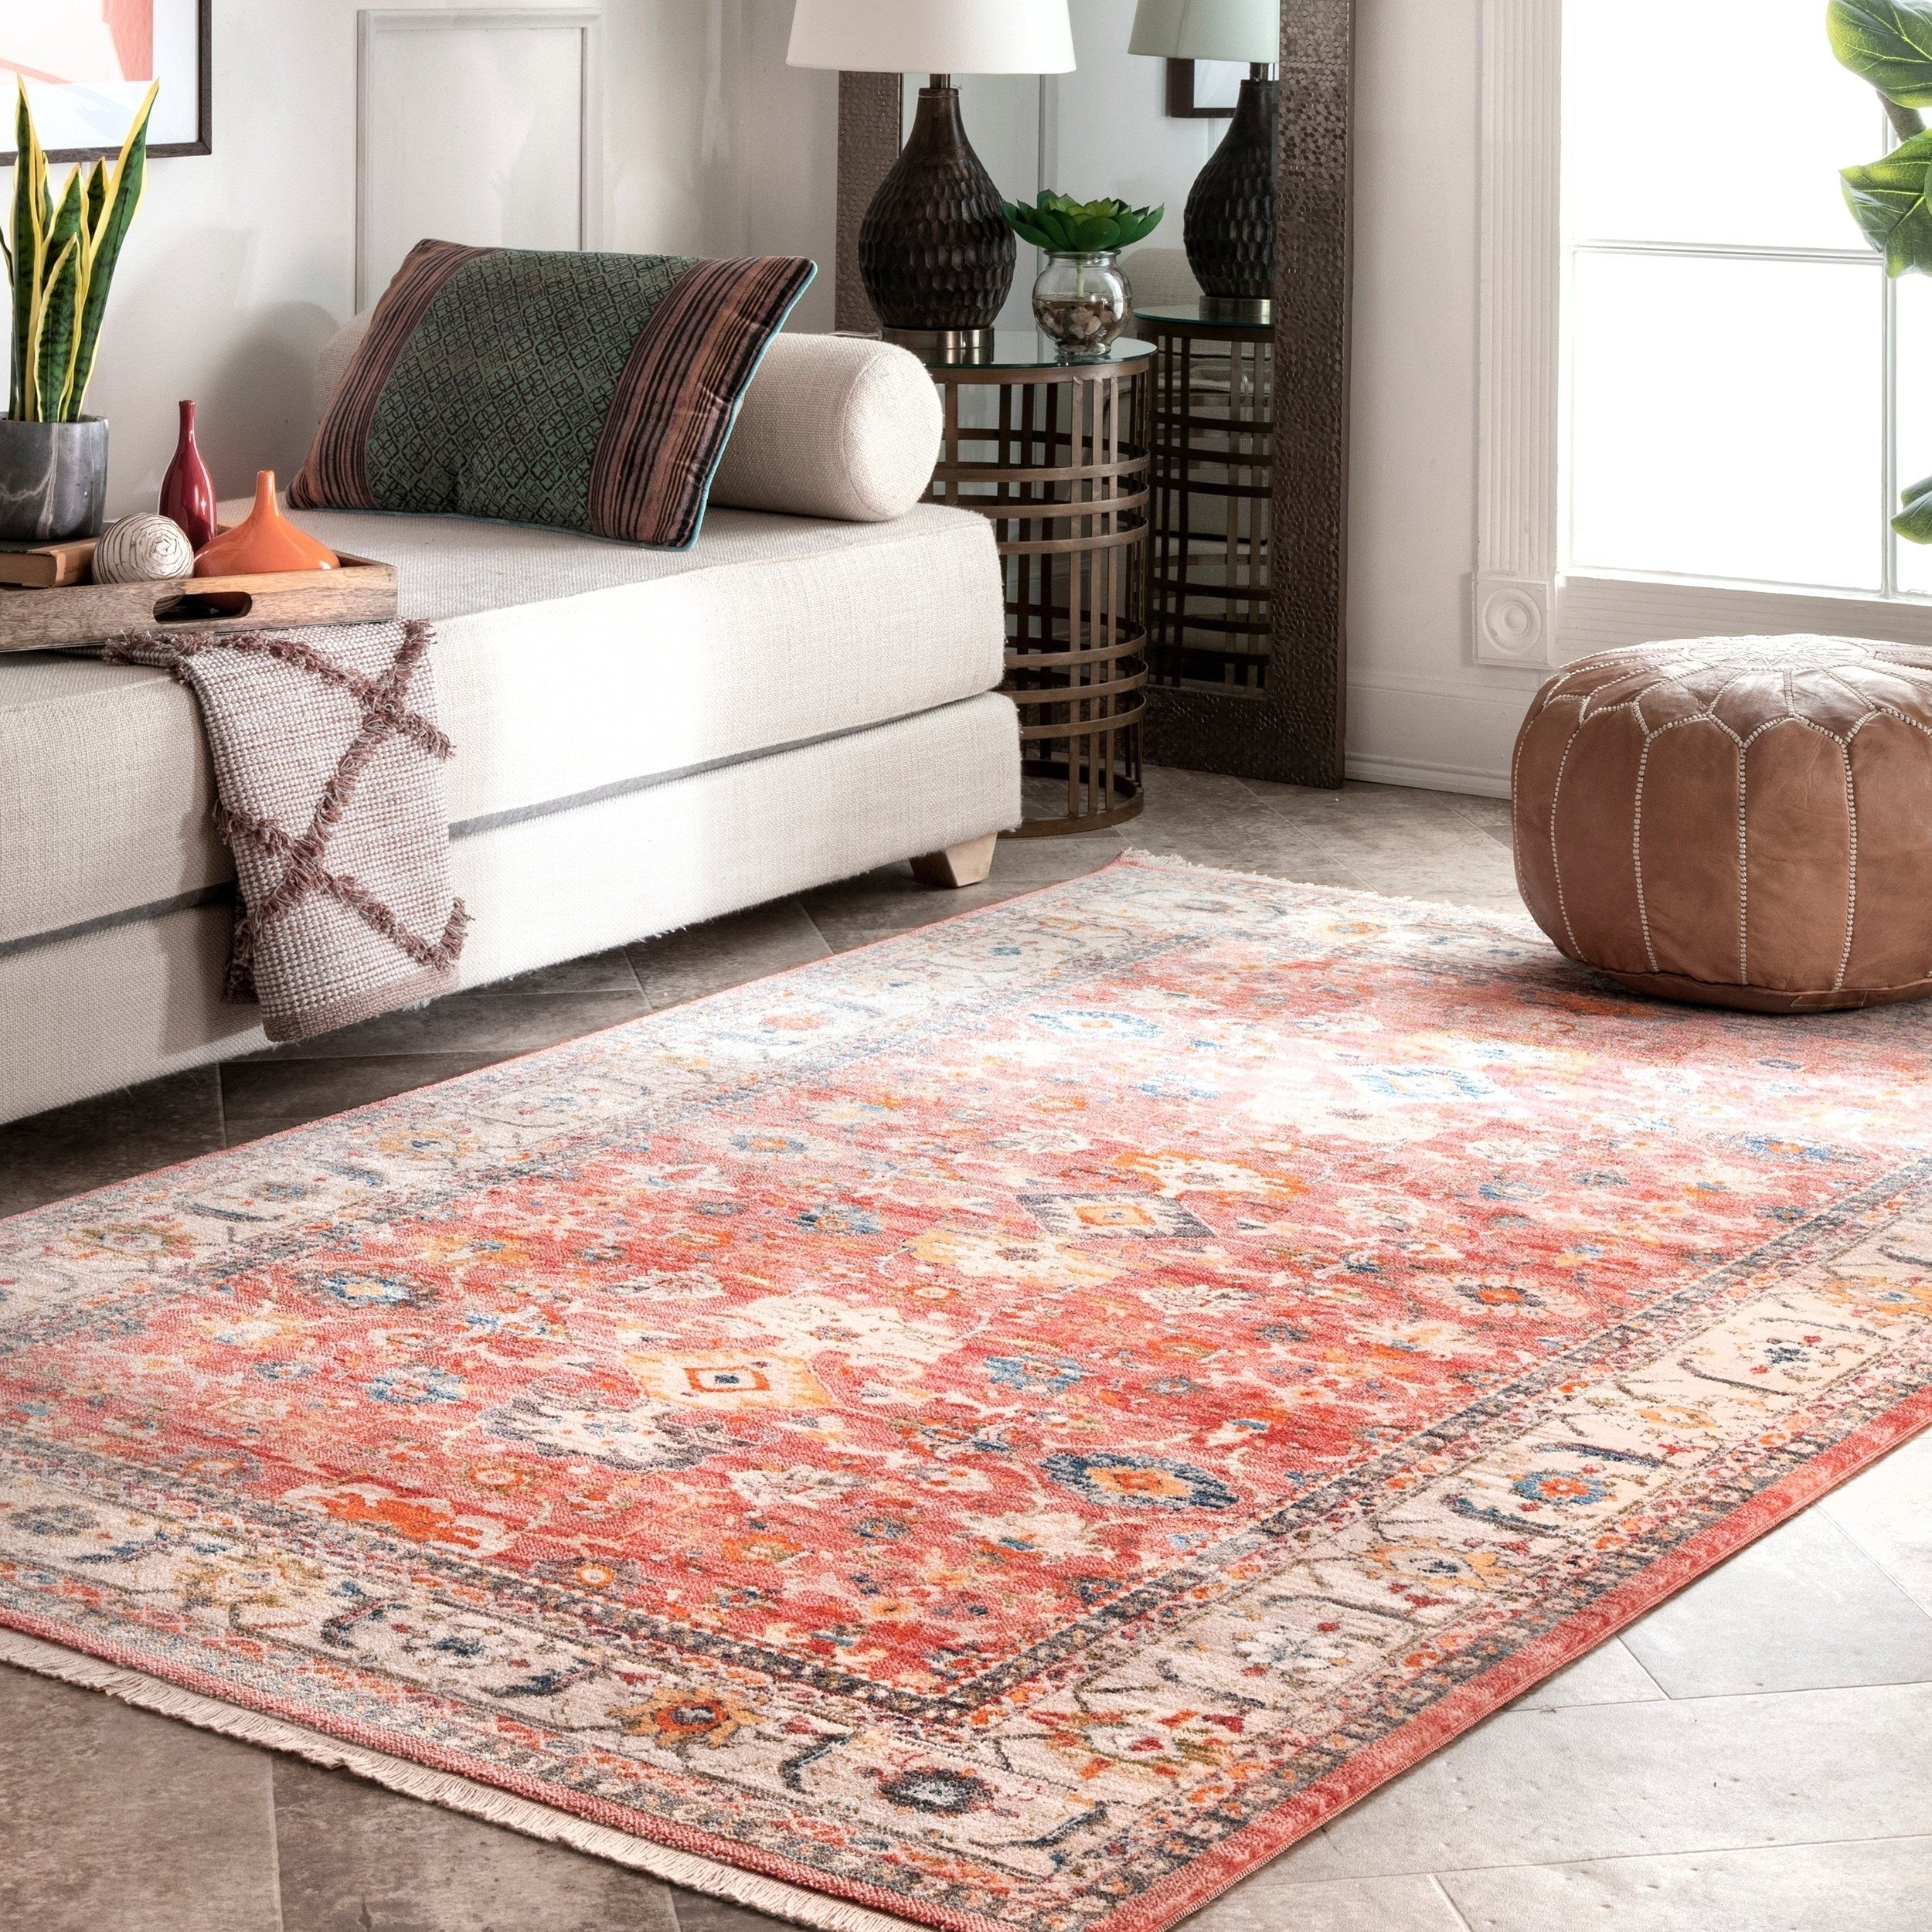 Nuloom Victorian Ombre Area Rug 6 7 X 9 4 Red Area Rugs